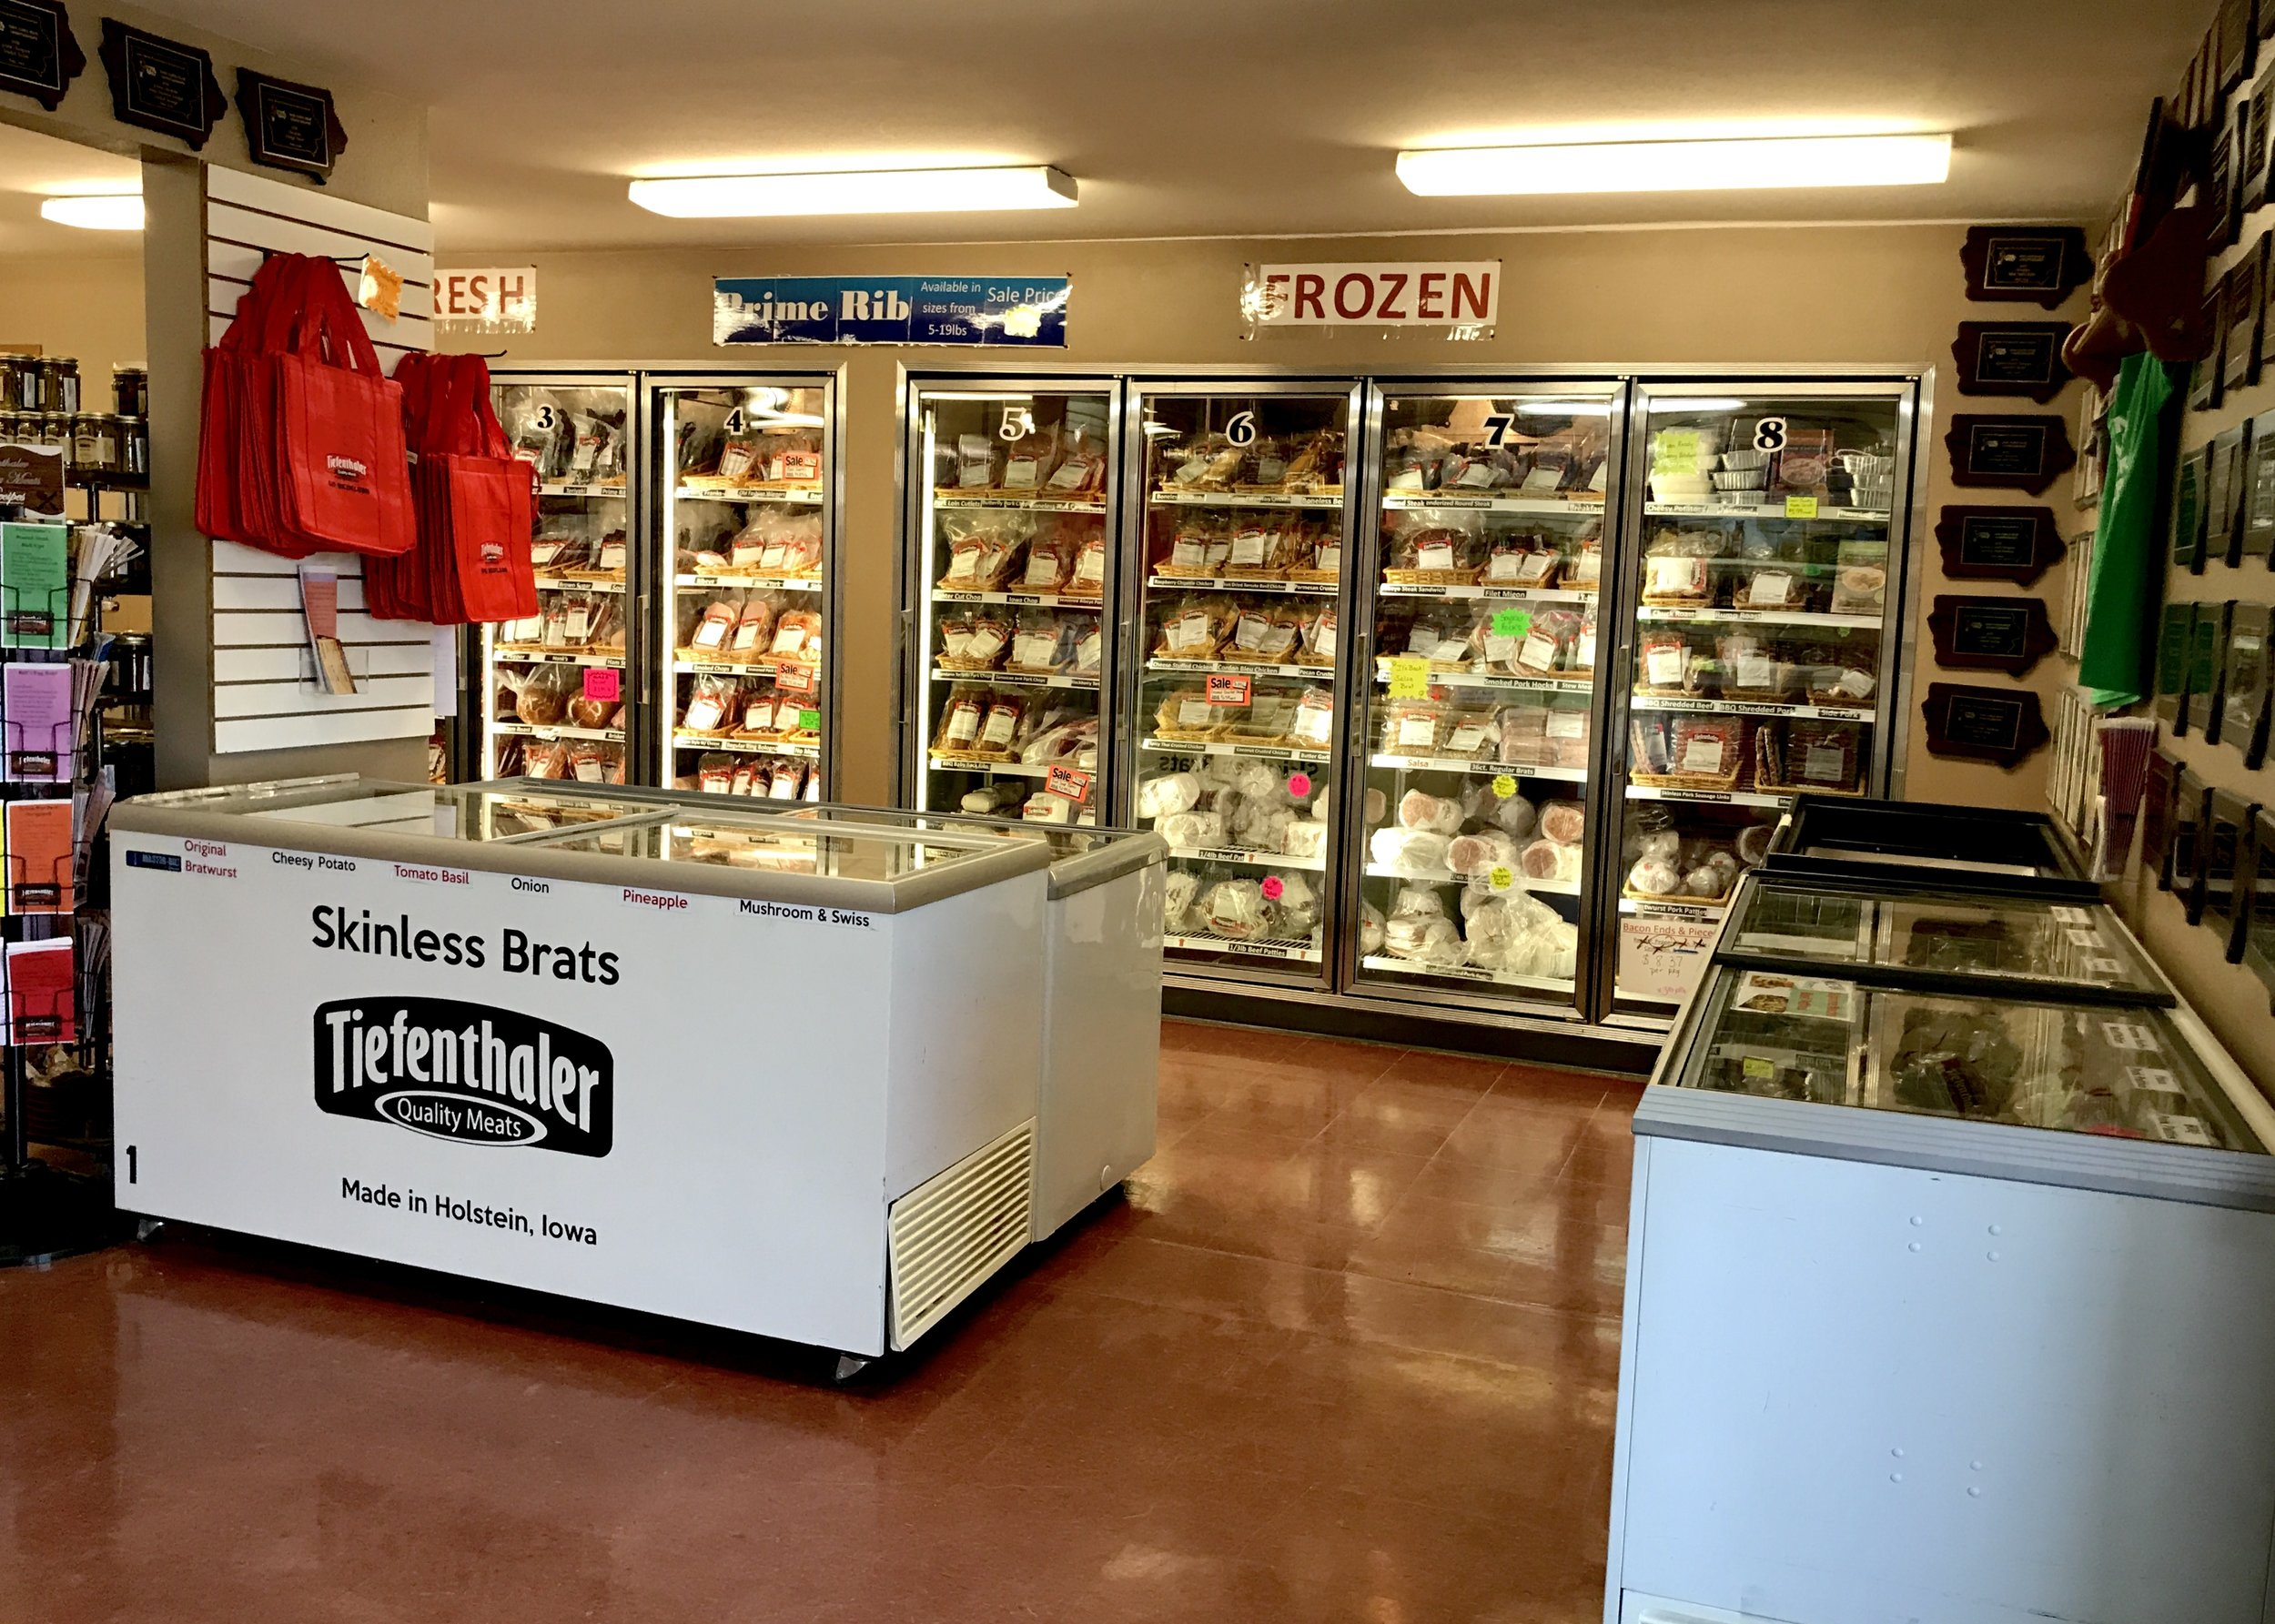 Tiefenthaler Quality Meats in Holstein is owned by John and Shelly Tiefenthaler. Photo credit: Anita McVey, Picnic Life Foodie